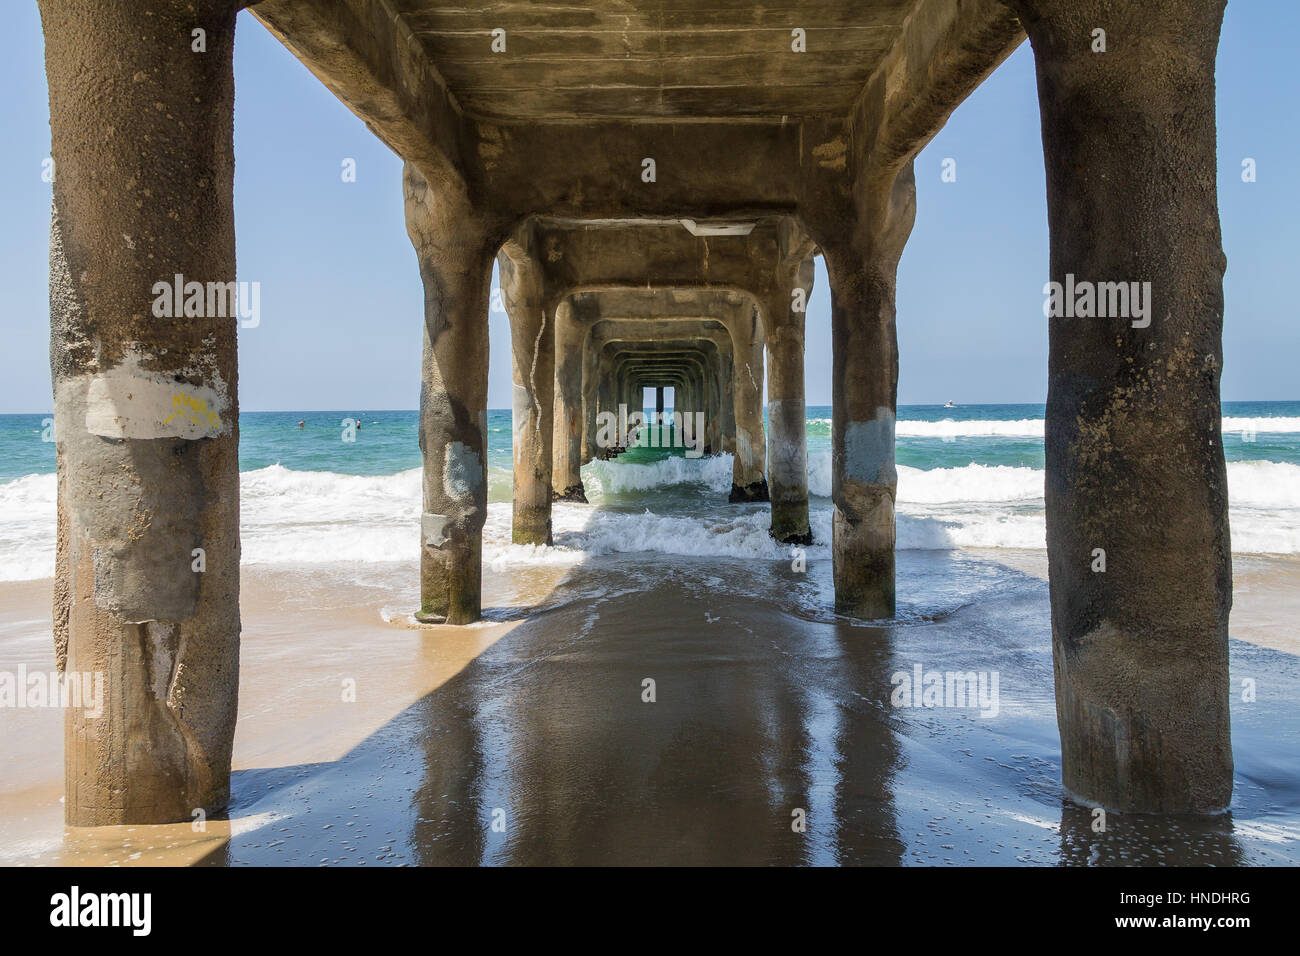 Standing beneath Manhattan Beach Piere as waves crash from the Pacific Ocean - Stock Image